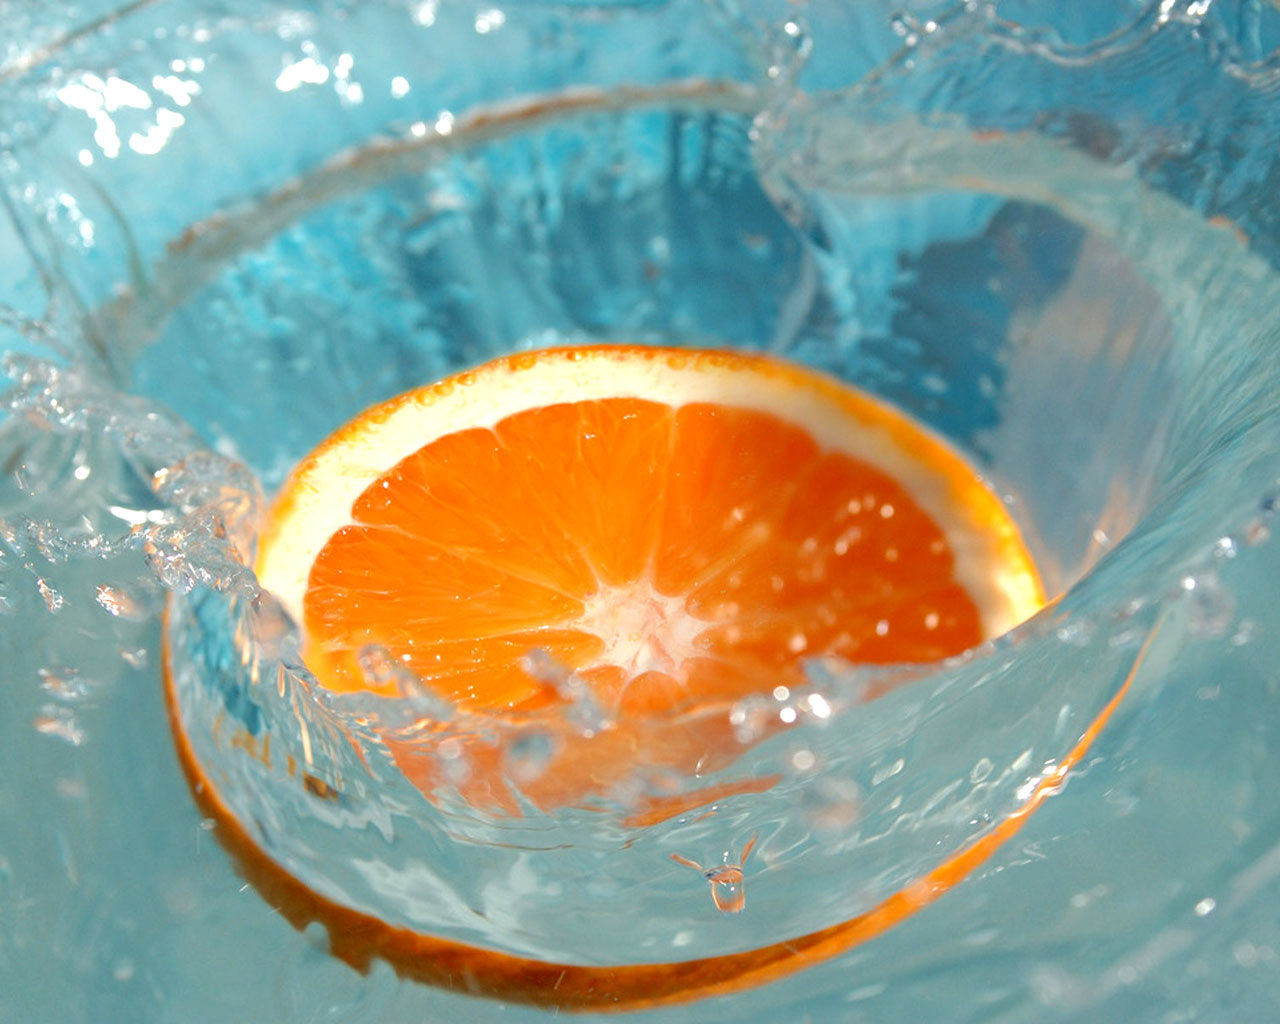 http://2.bp.blogspot.com/-fHRAQjmUB2Q/TdwKfEd0YRI/AAAAAAAAAZQ/ZClNpS6e3rE/s1600/Orange_Slice_Splashing_Into_Water.jpg